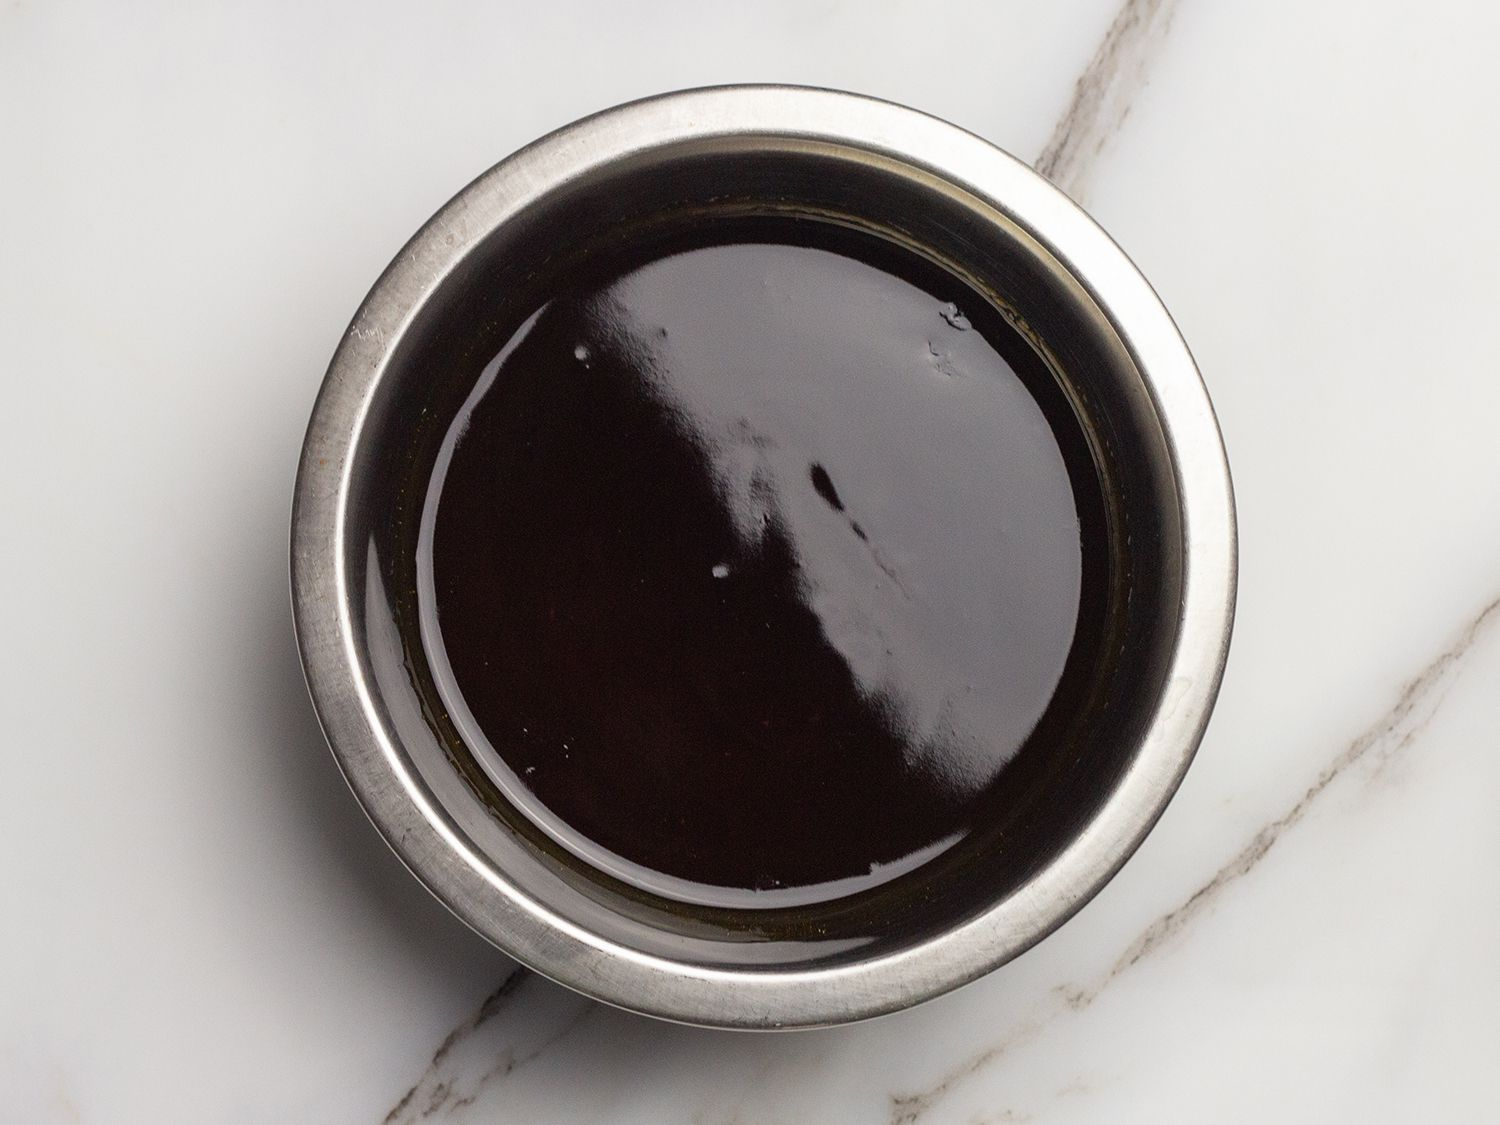 Overhead view of finished soy glaze in a small mixing bowl